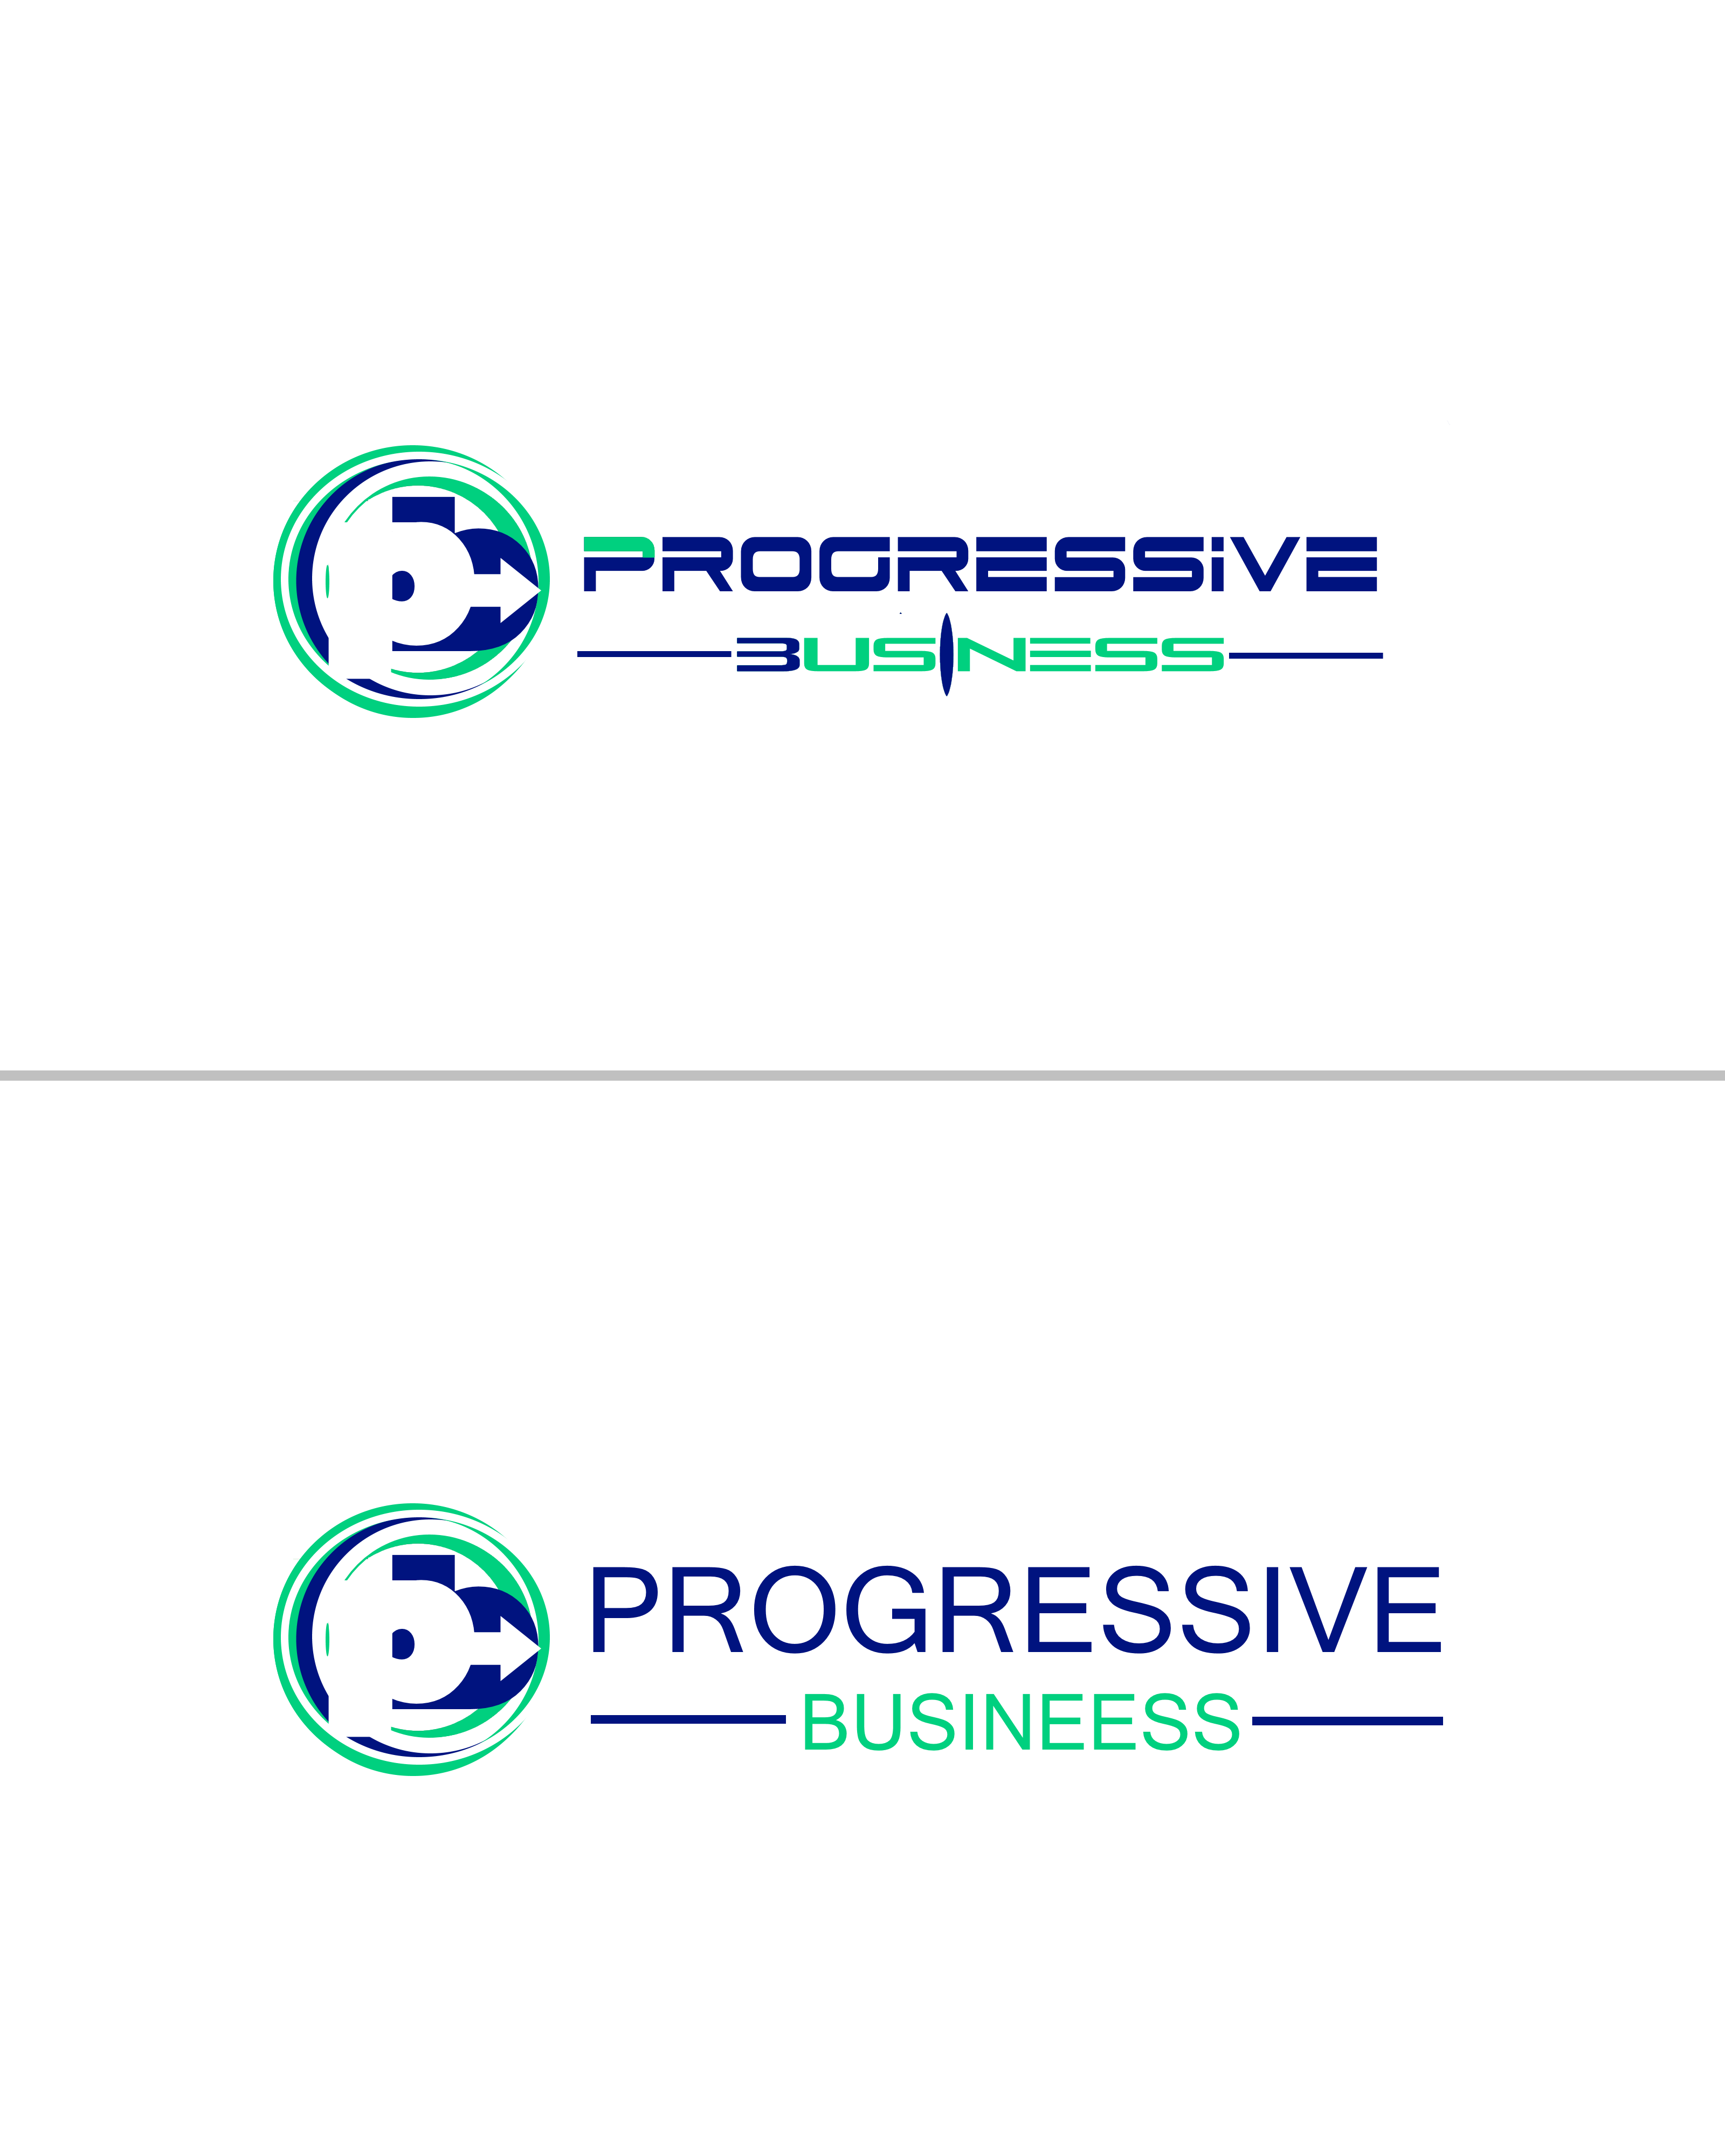 Logo Design by Roberto Bassi - Entry No. 212 in the Logo Design Contest Captivating Logo Design for Progressive Business.